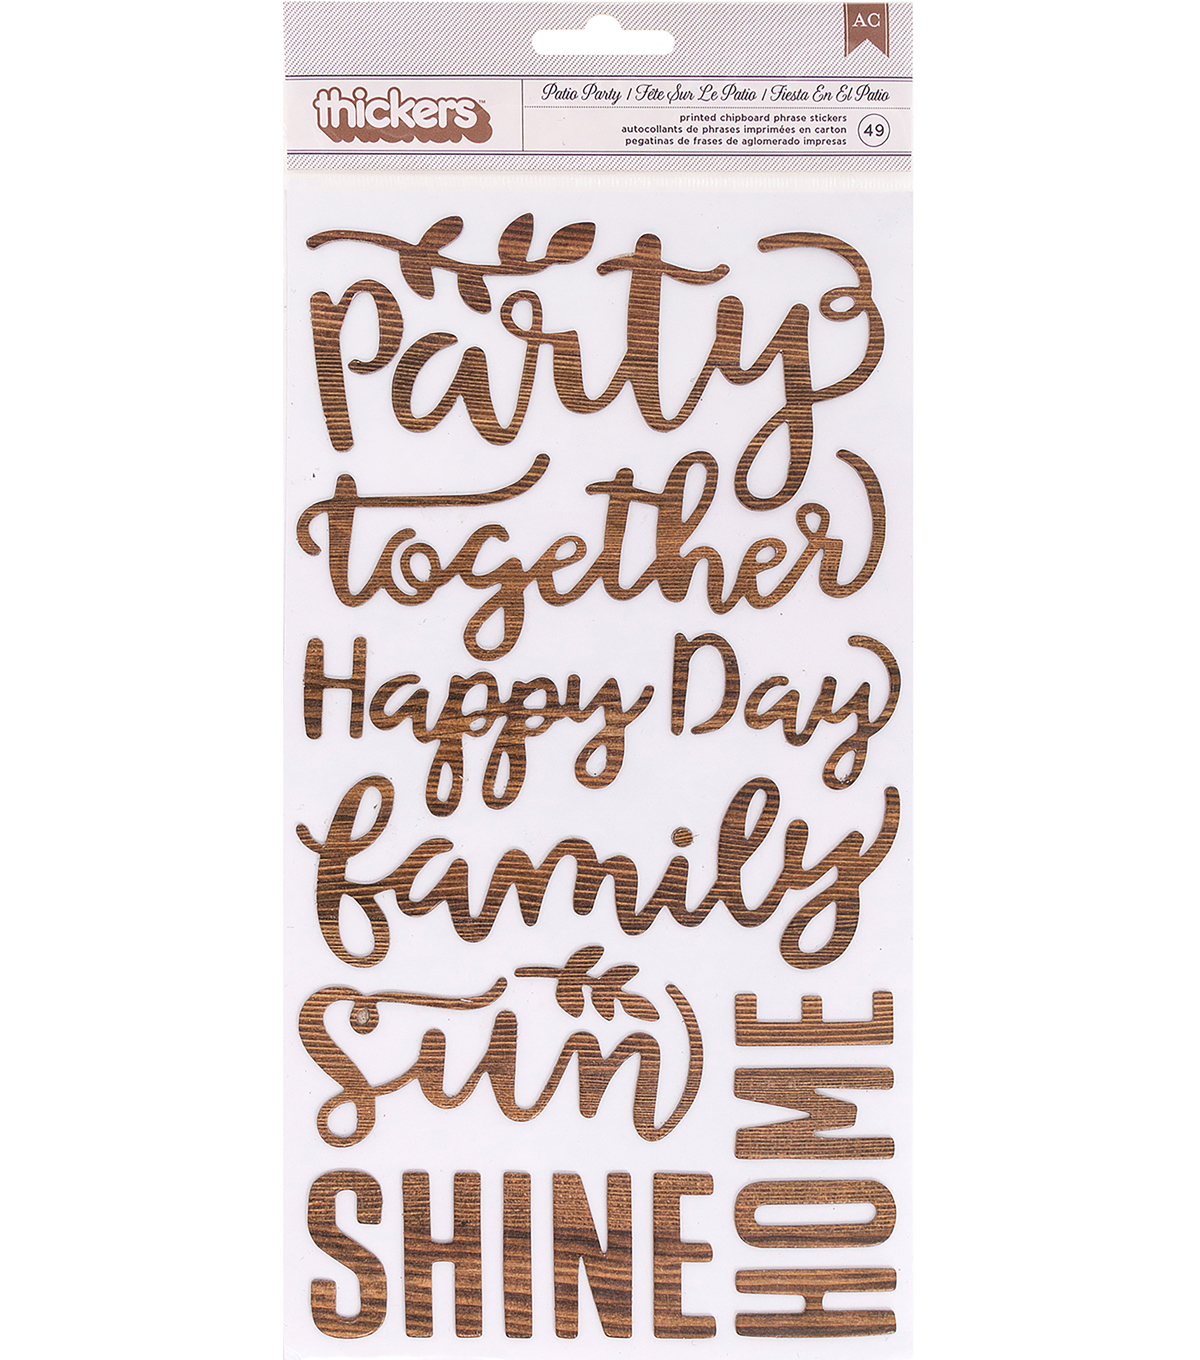 Pebbles Patio Party 49 pk Printed Chipboard Phrase Thickers Stickers